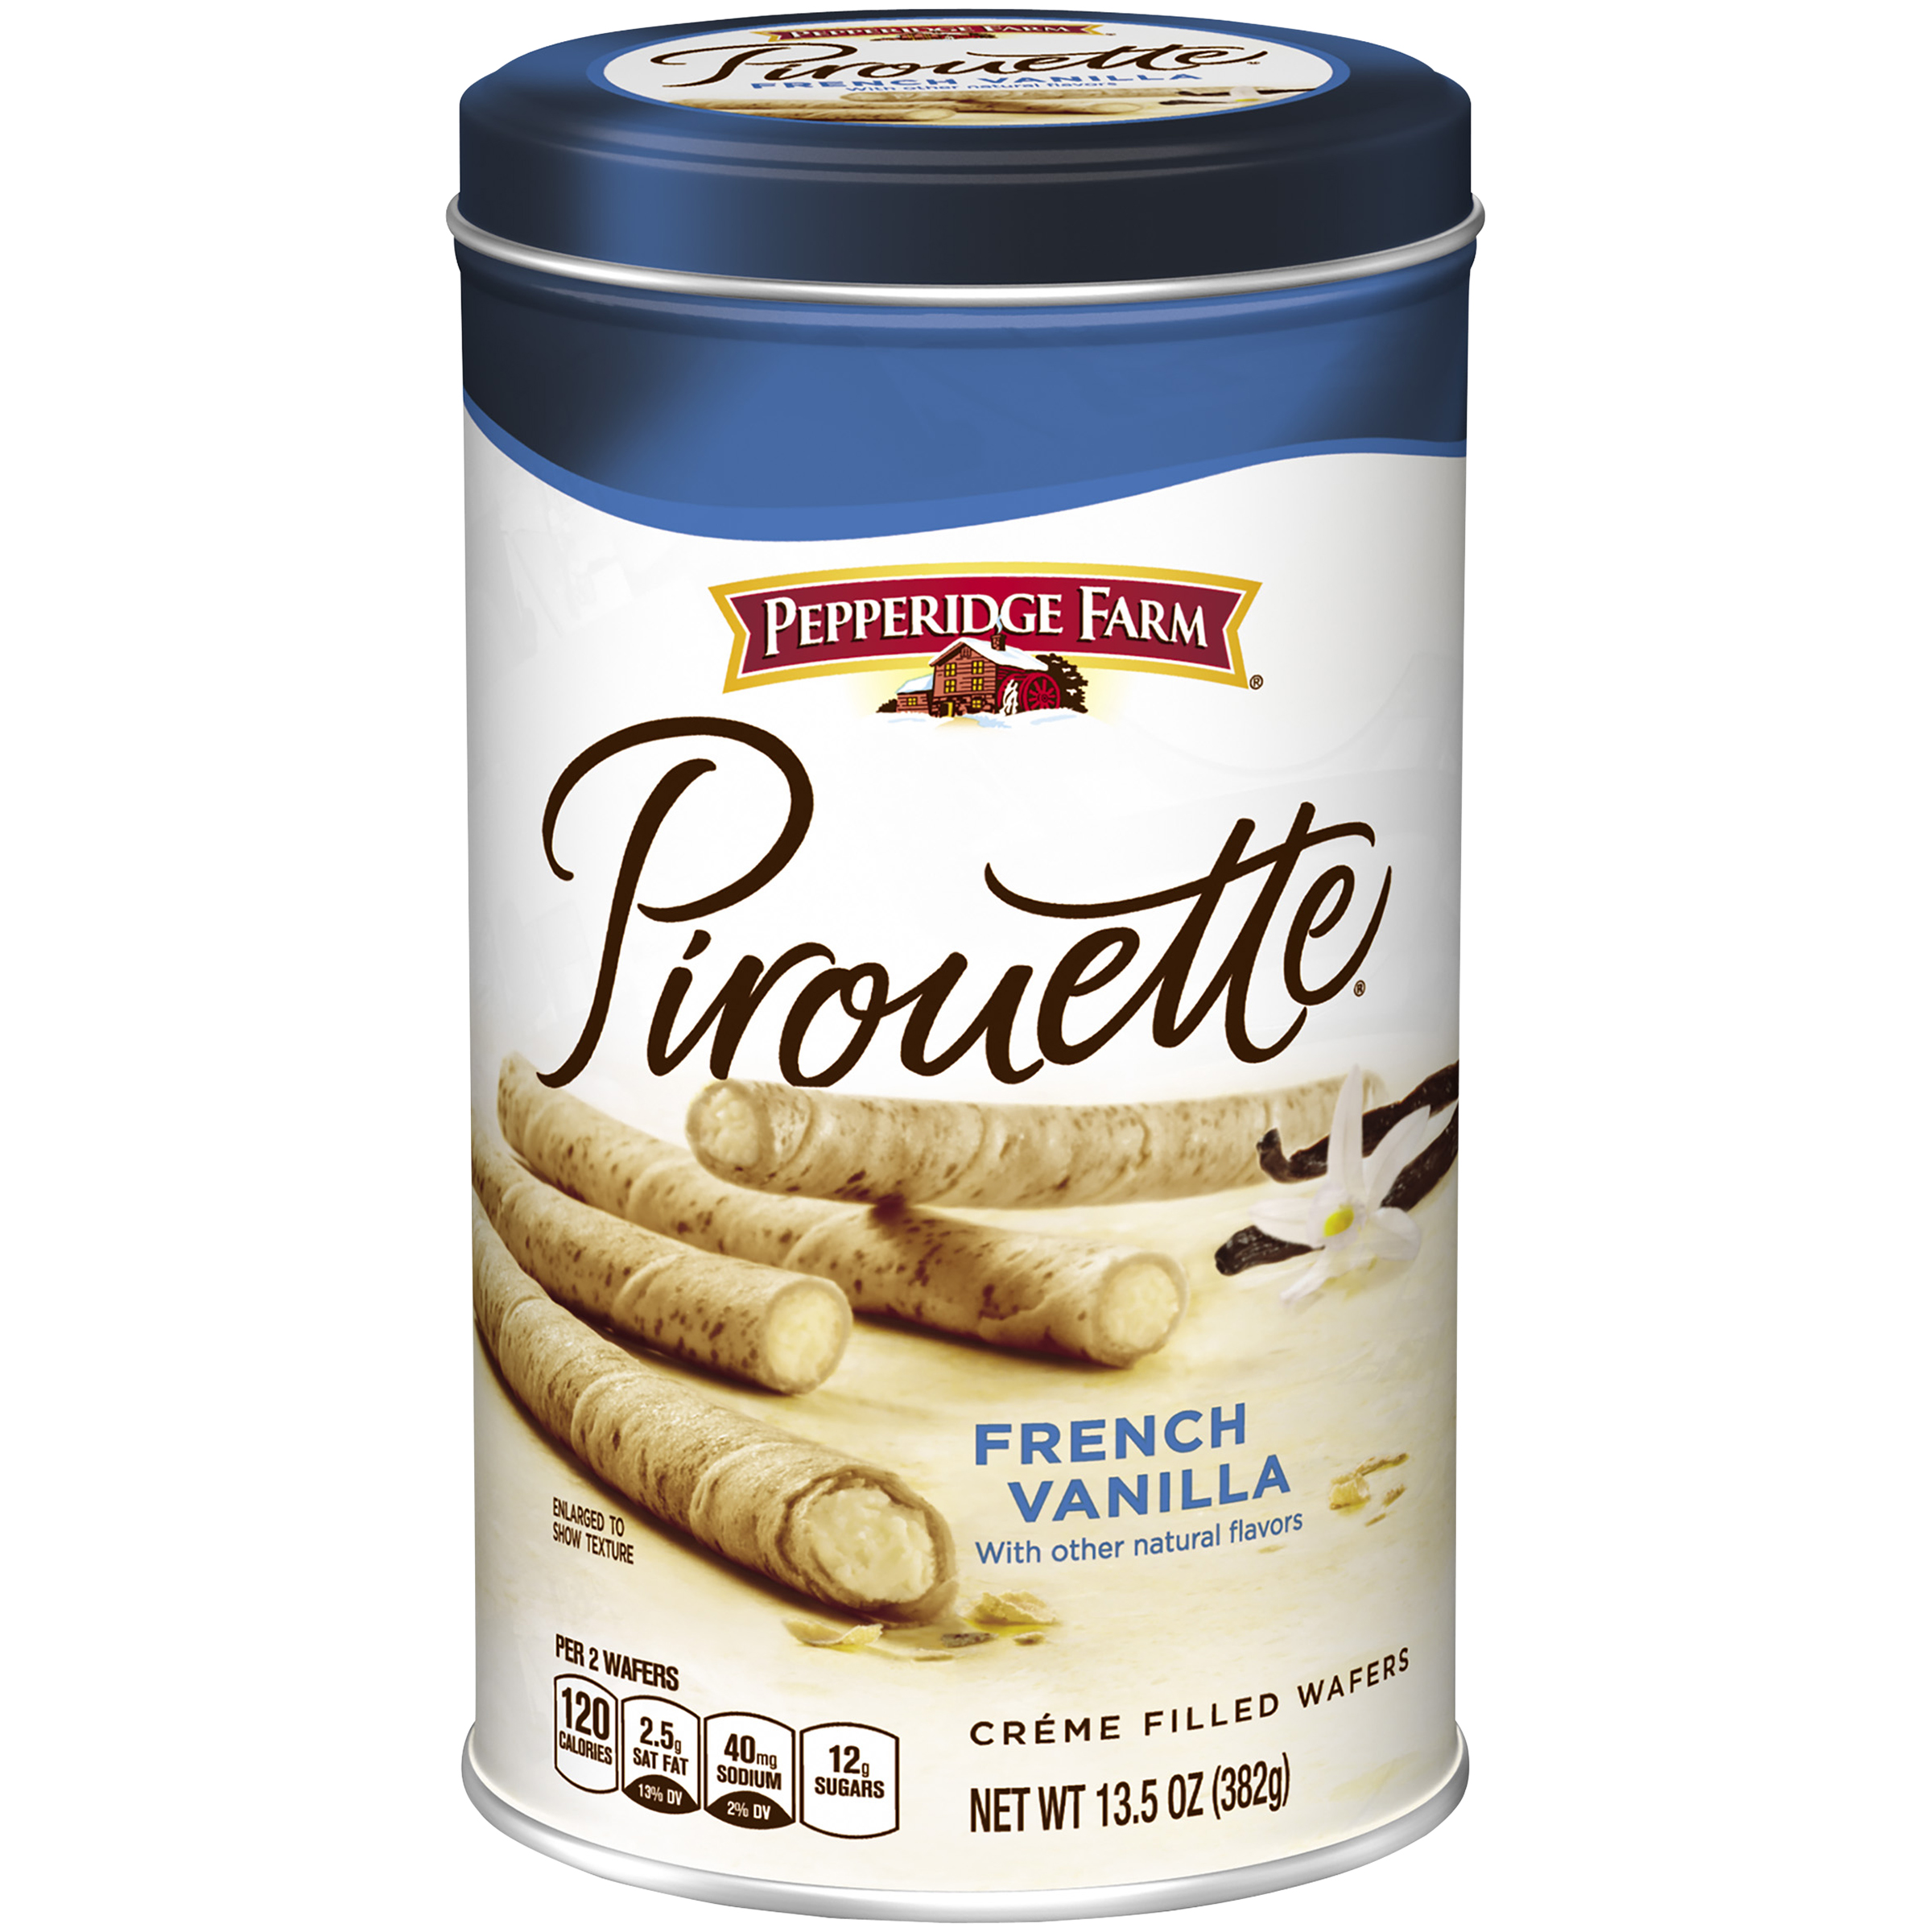 Pepperidge Farm® Pirouette® French Vanilla Créme Filled Wafers 13.5 oz. Canister